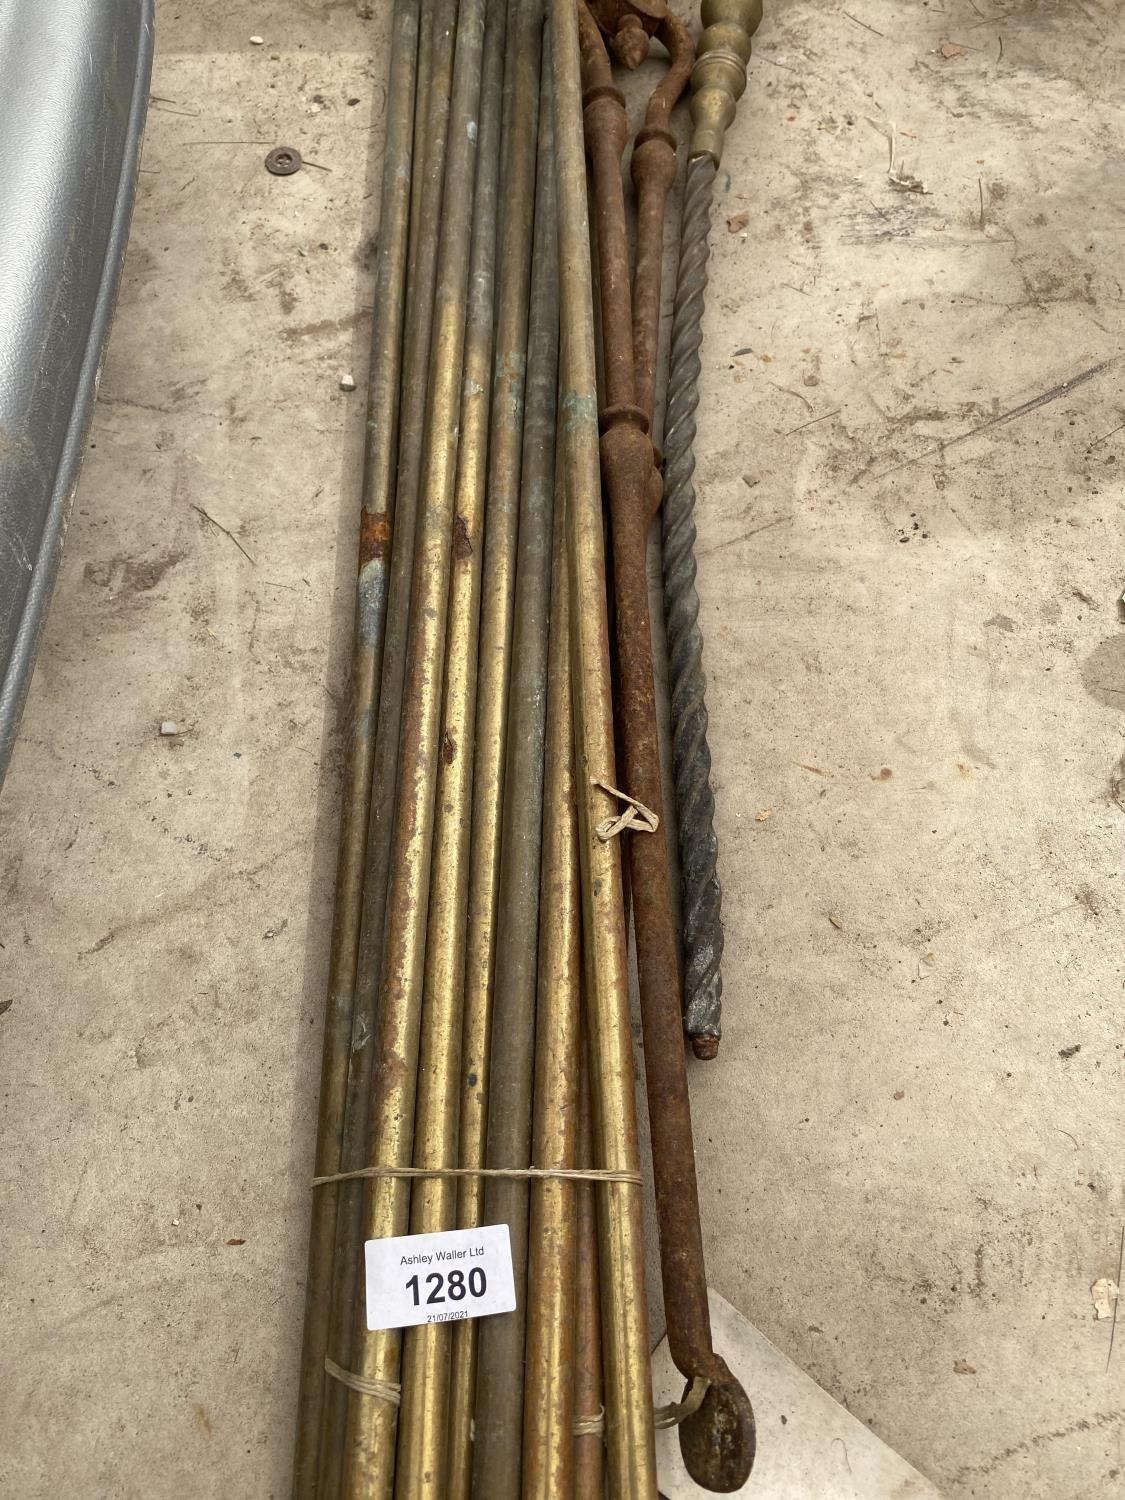 A QUANTITY OF BRASS BARS ANDD A FIRE POKER ETC - Image 3 of 4